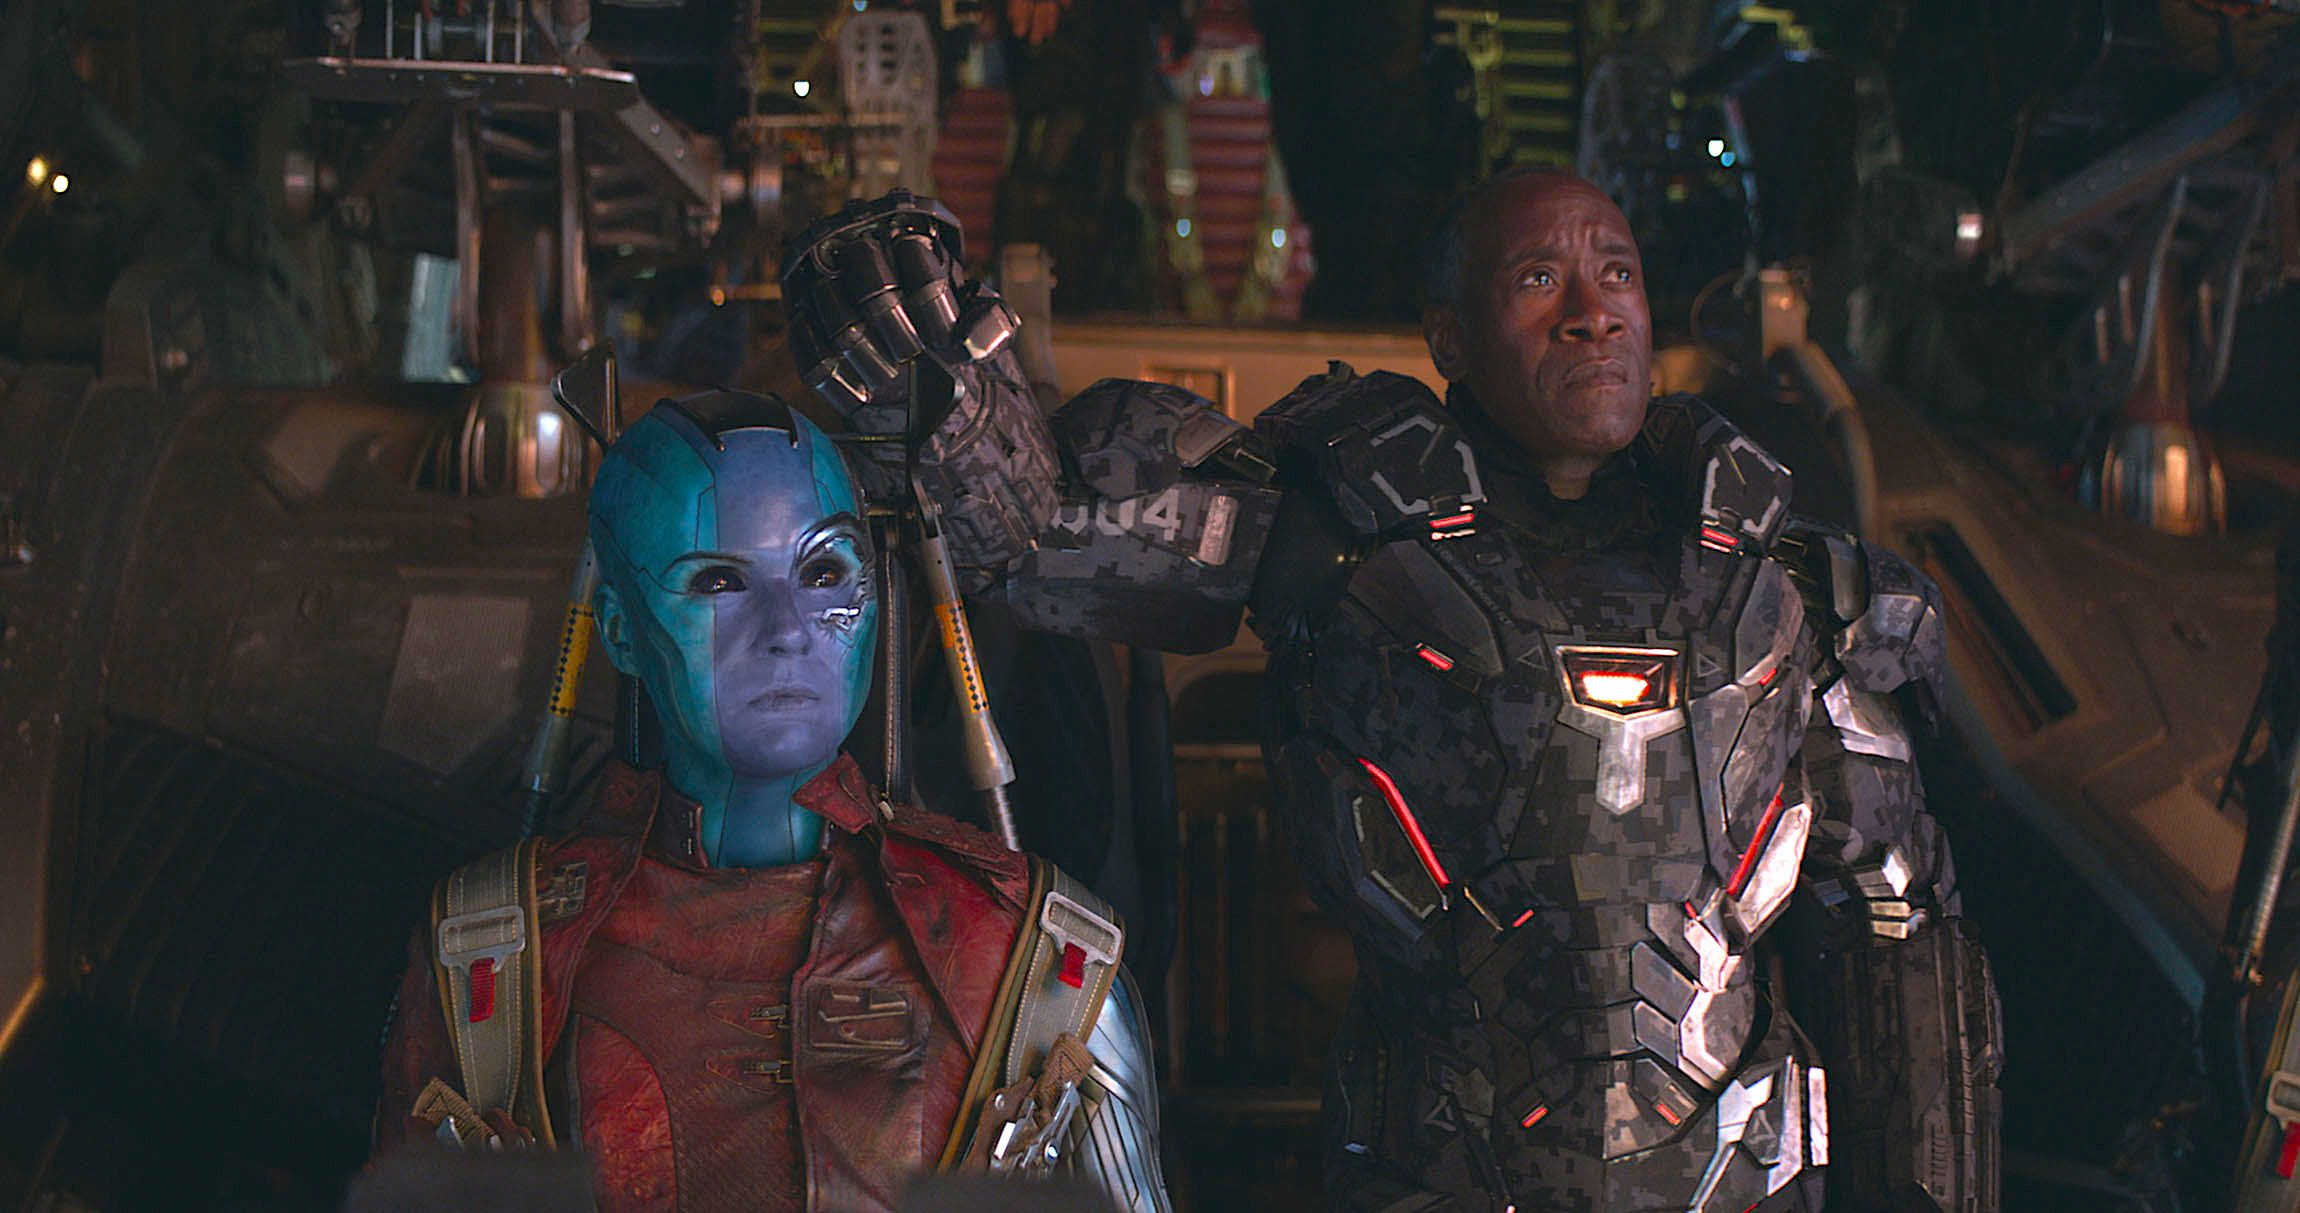 In Avengers: Endgame, What's the Deal With the Post-Credit Scene?